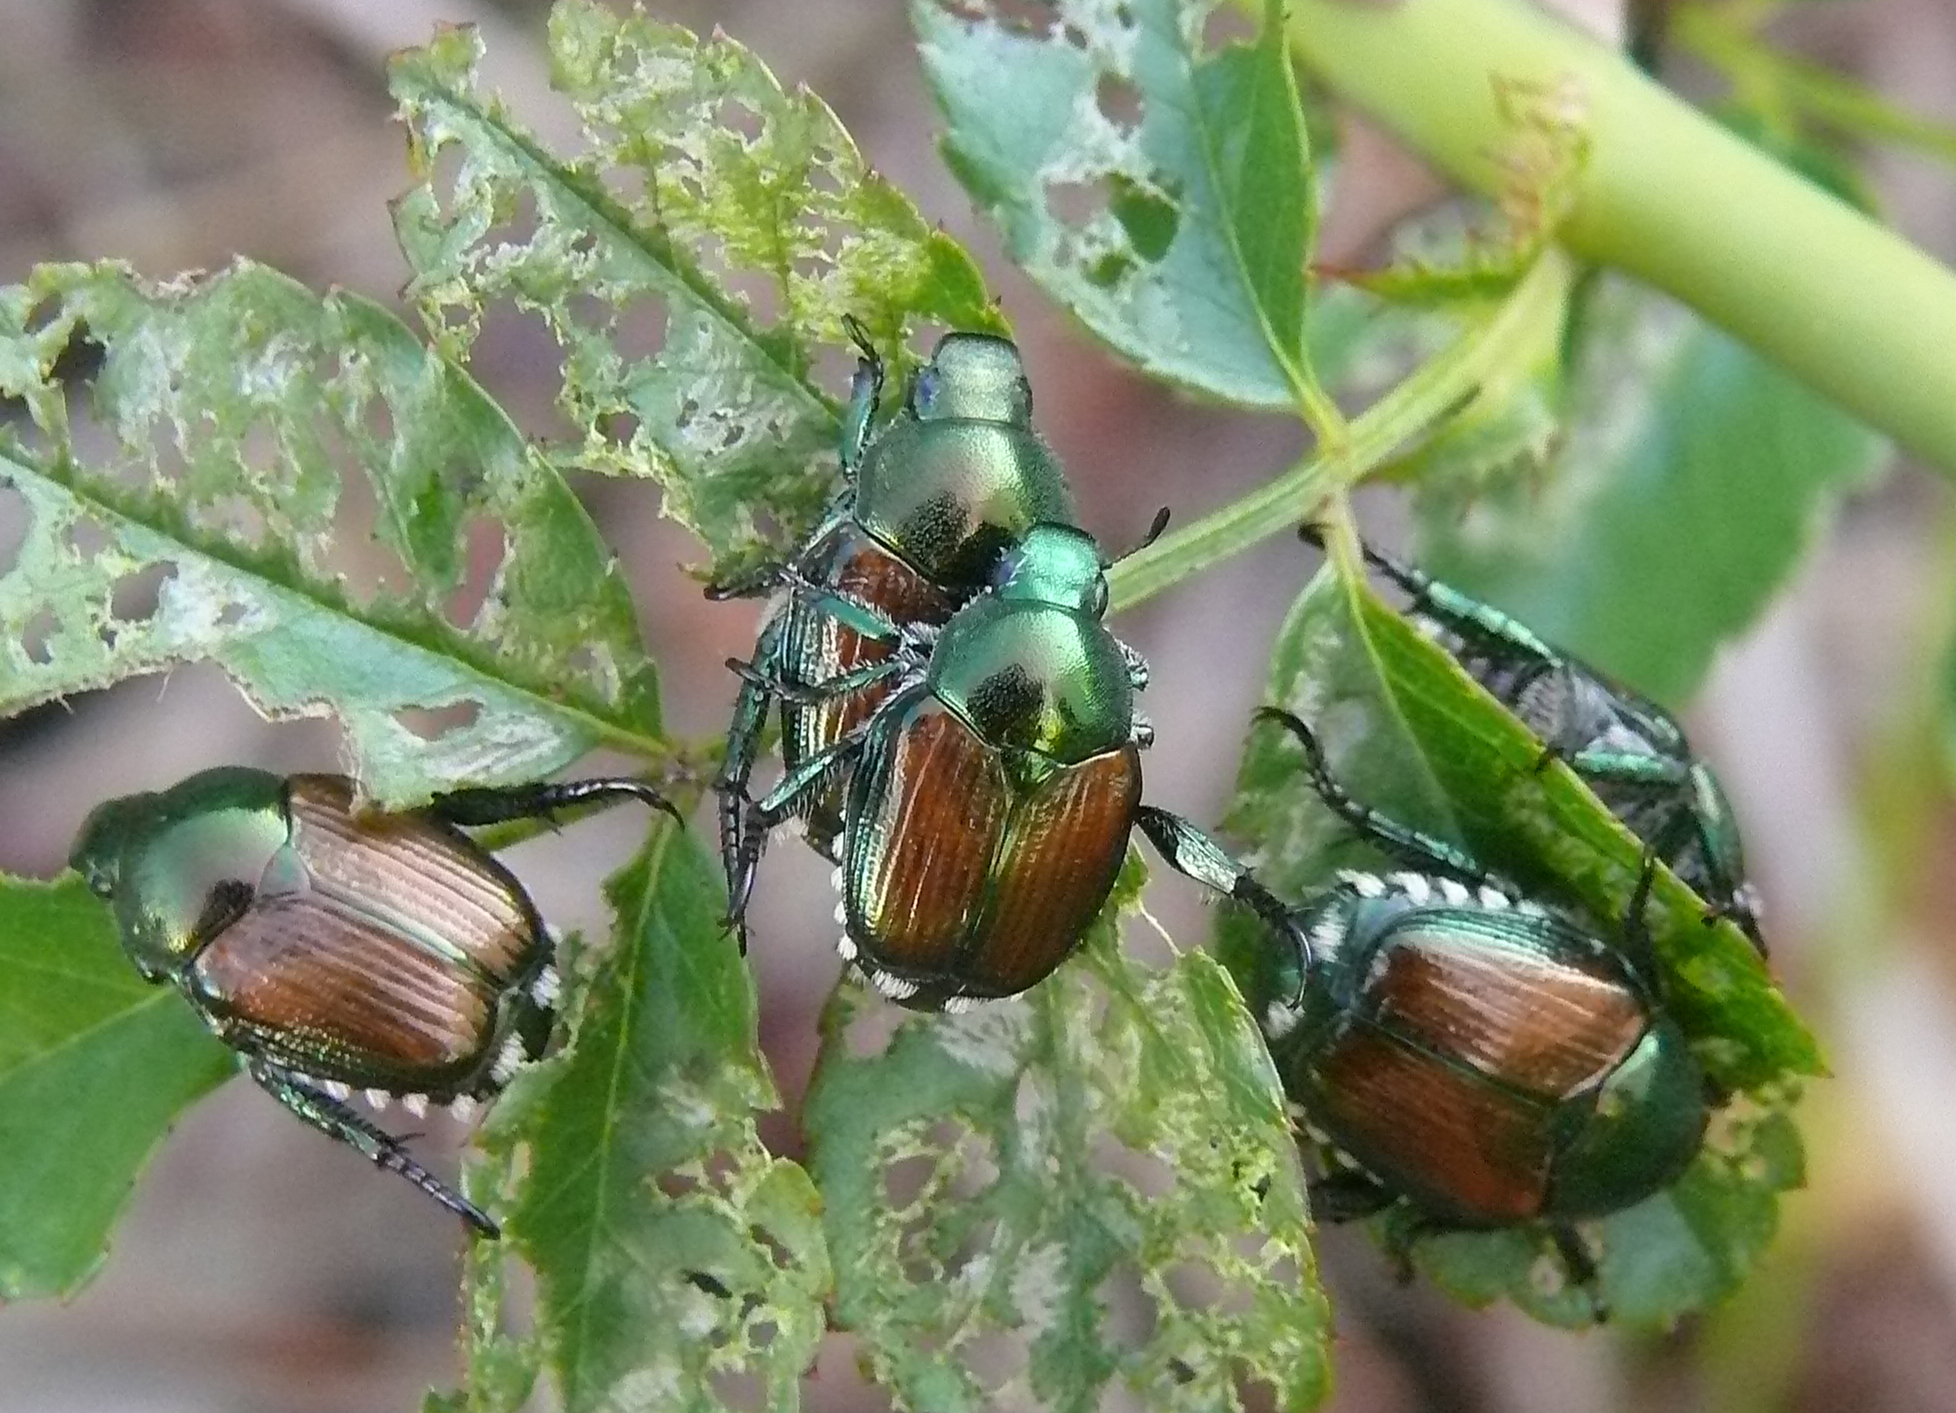 Popillia japonica mating and feeding by day, plant leaves with characteristic damage; photo by Lamba